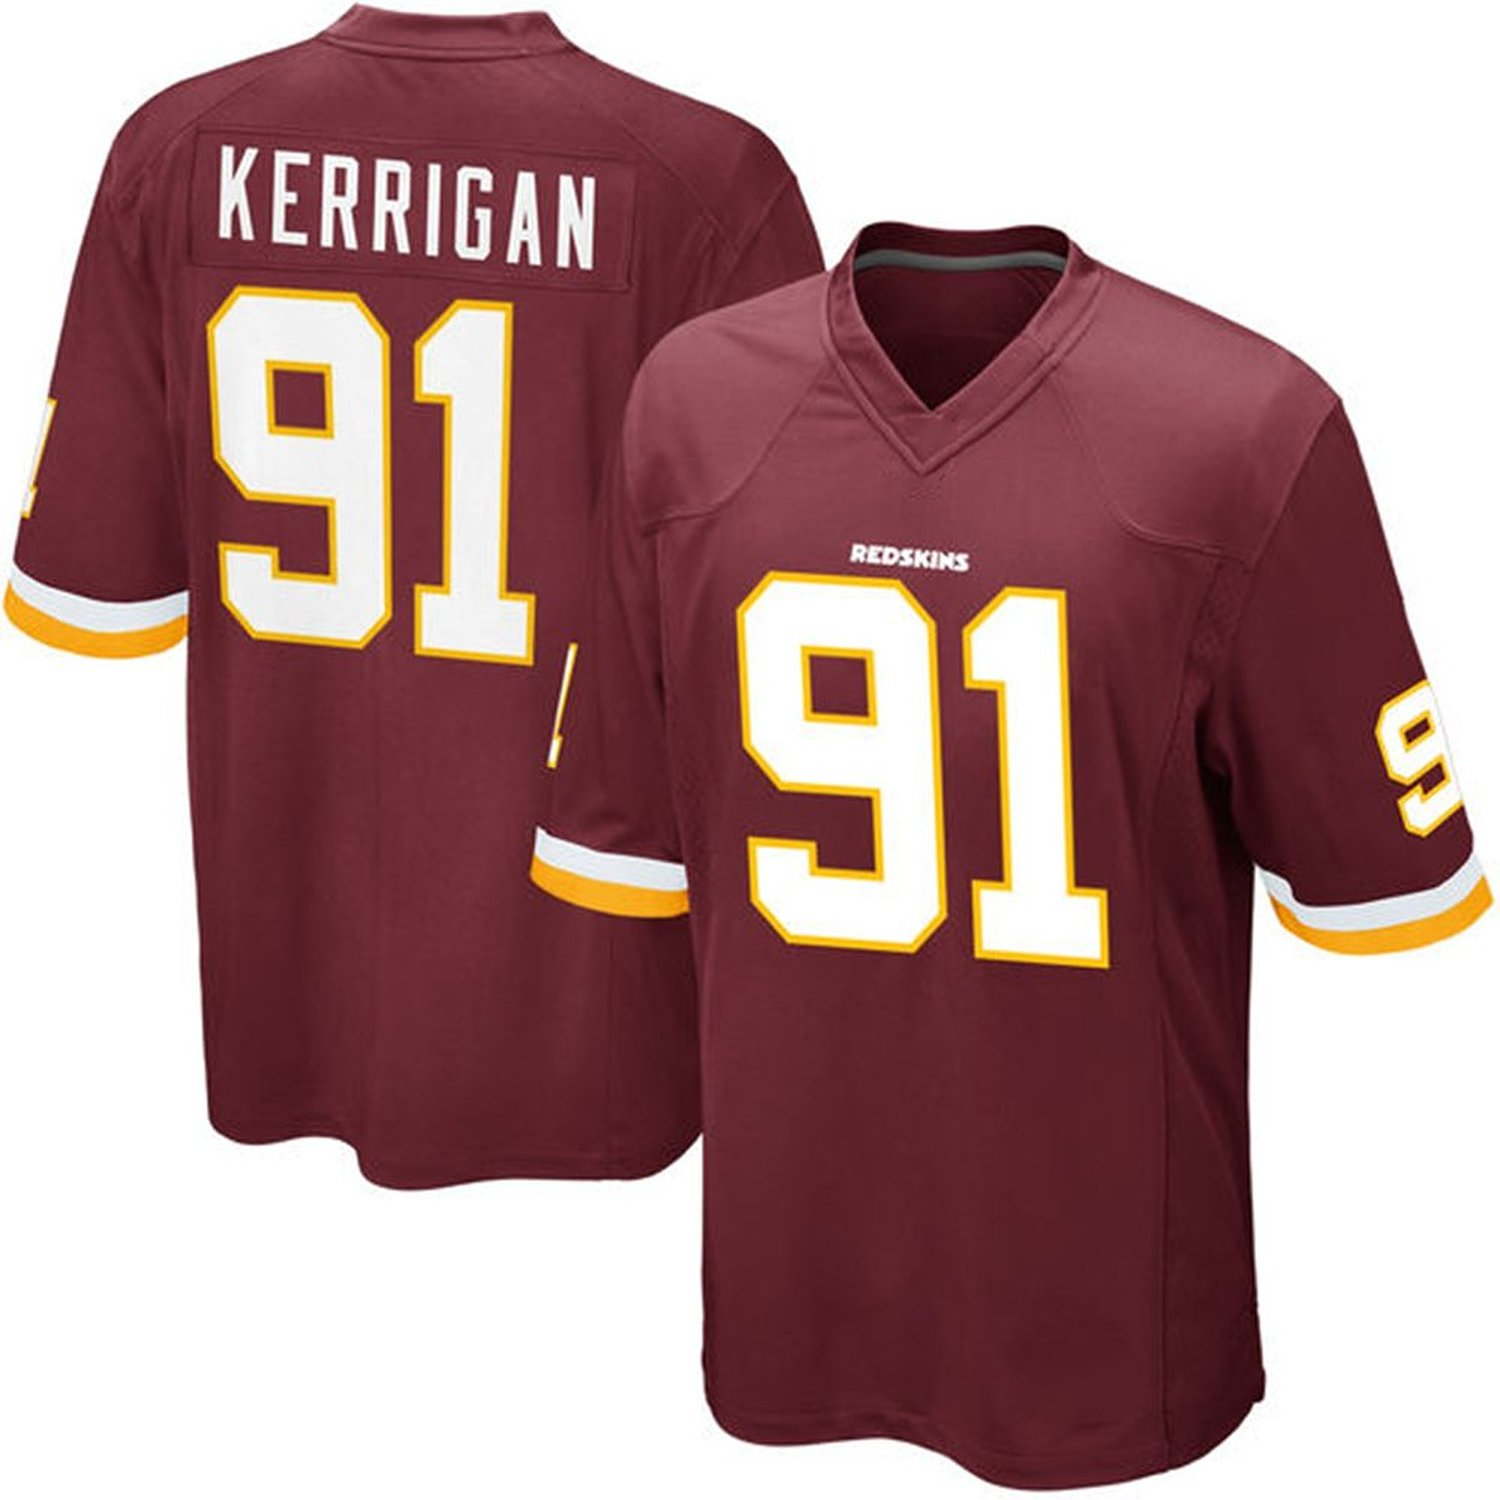 Top Cheap Redskins Custom Jersey, find Redskins Custom Jersey deals on  free shipping